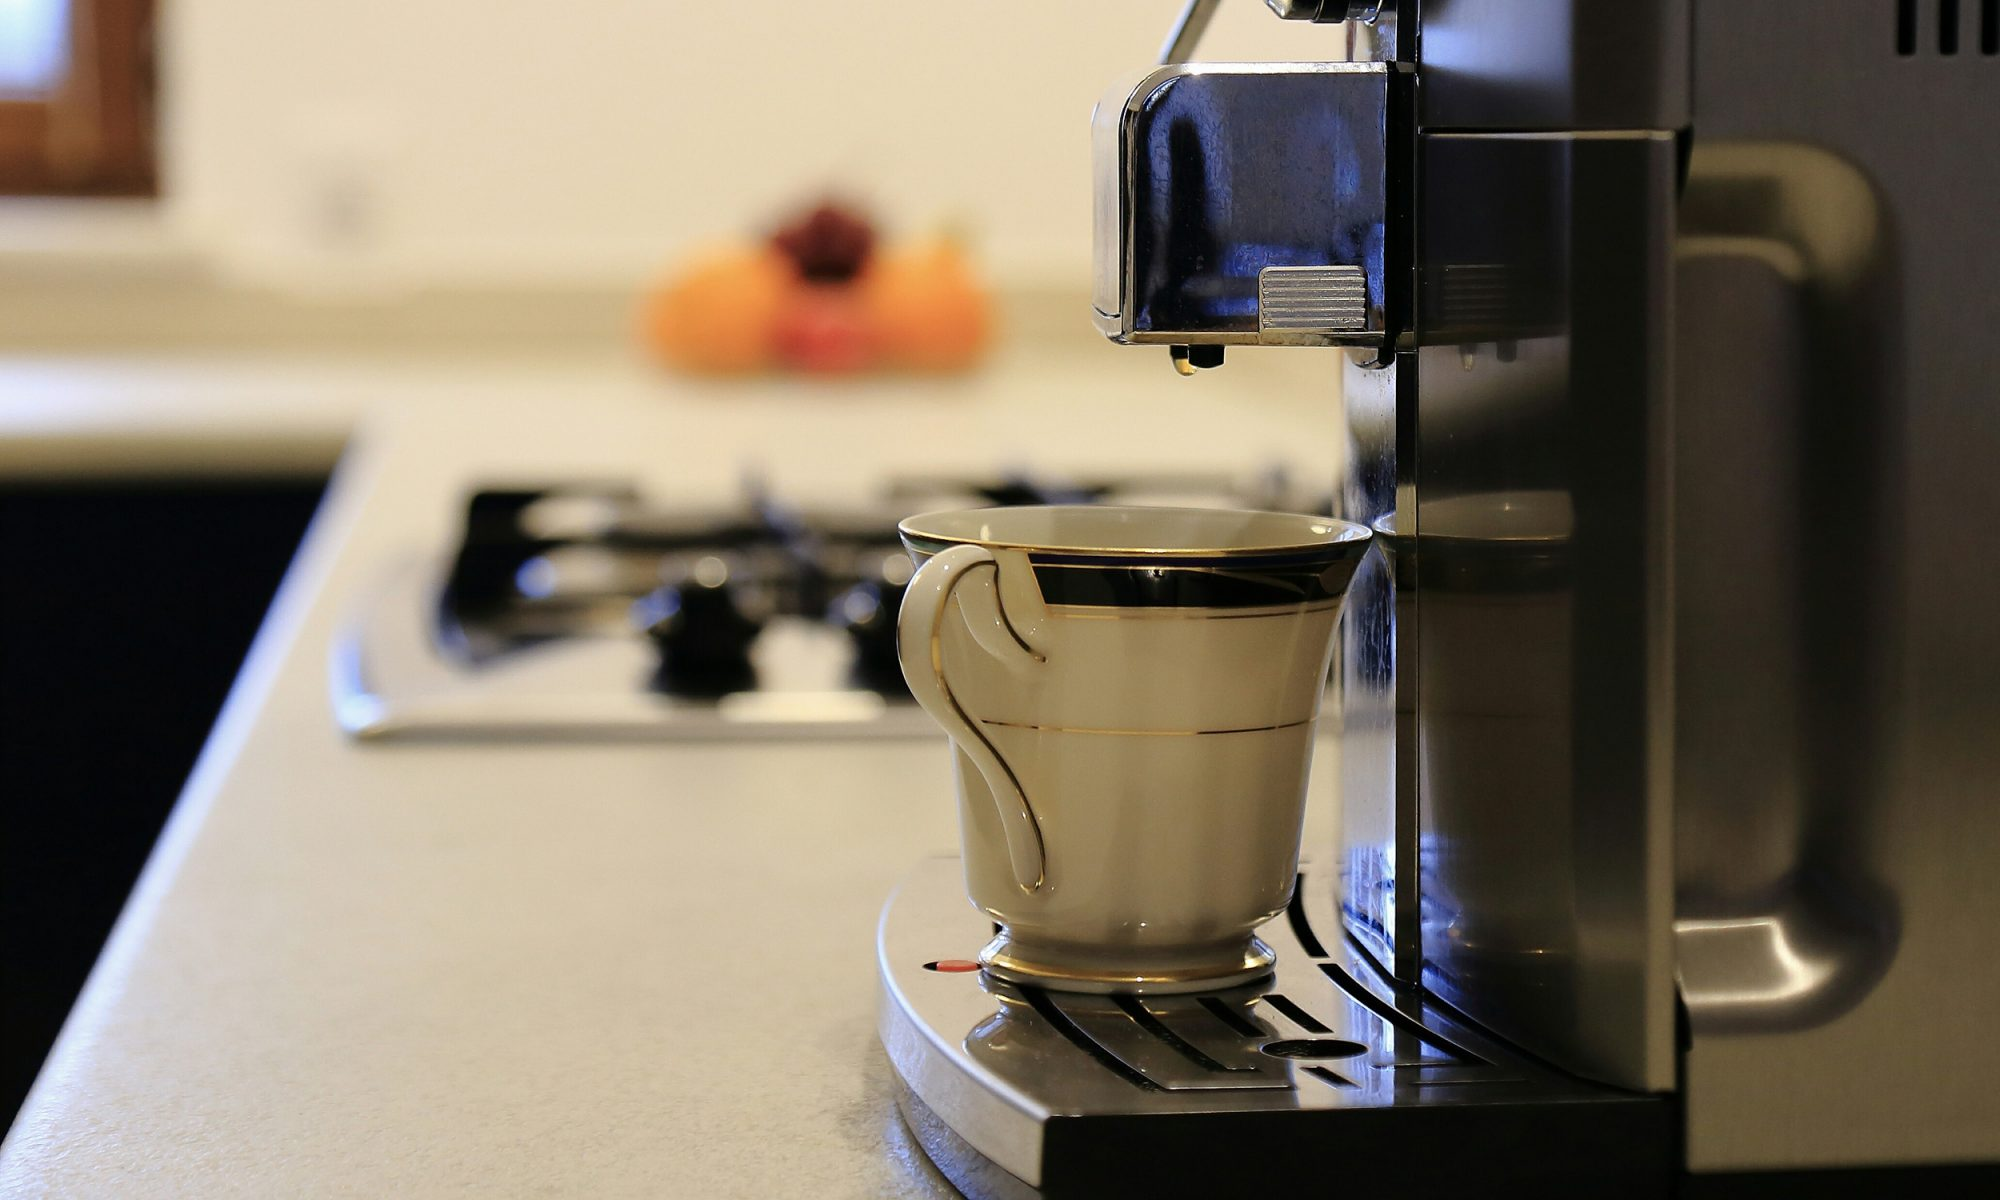 EC: How a Computer Programmer Hacked His Coffee Maker